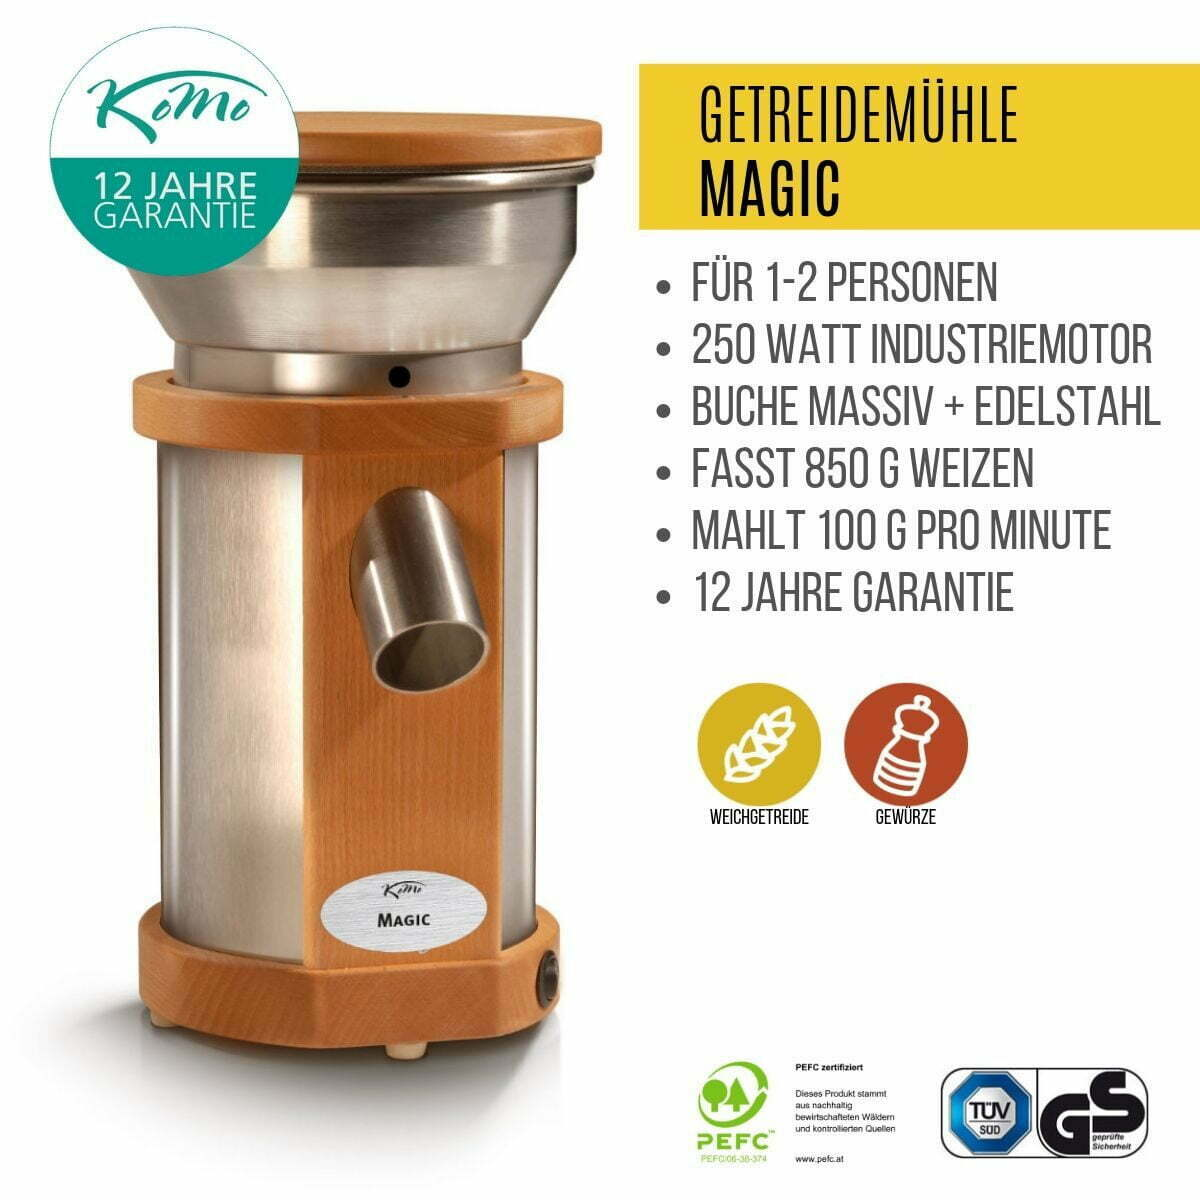 Getreidemühle Magic